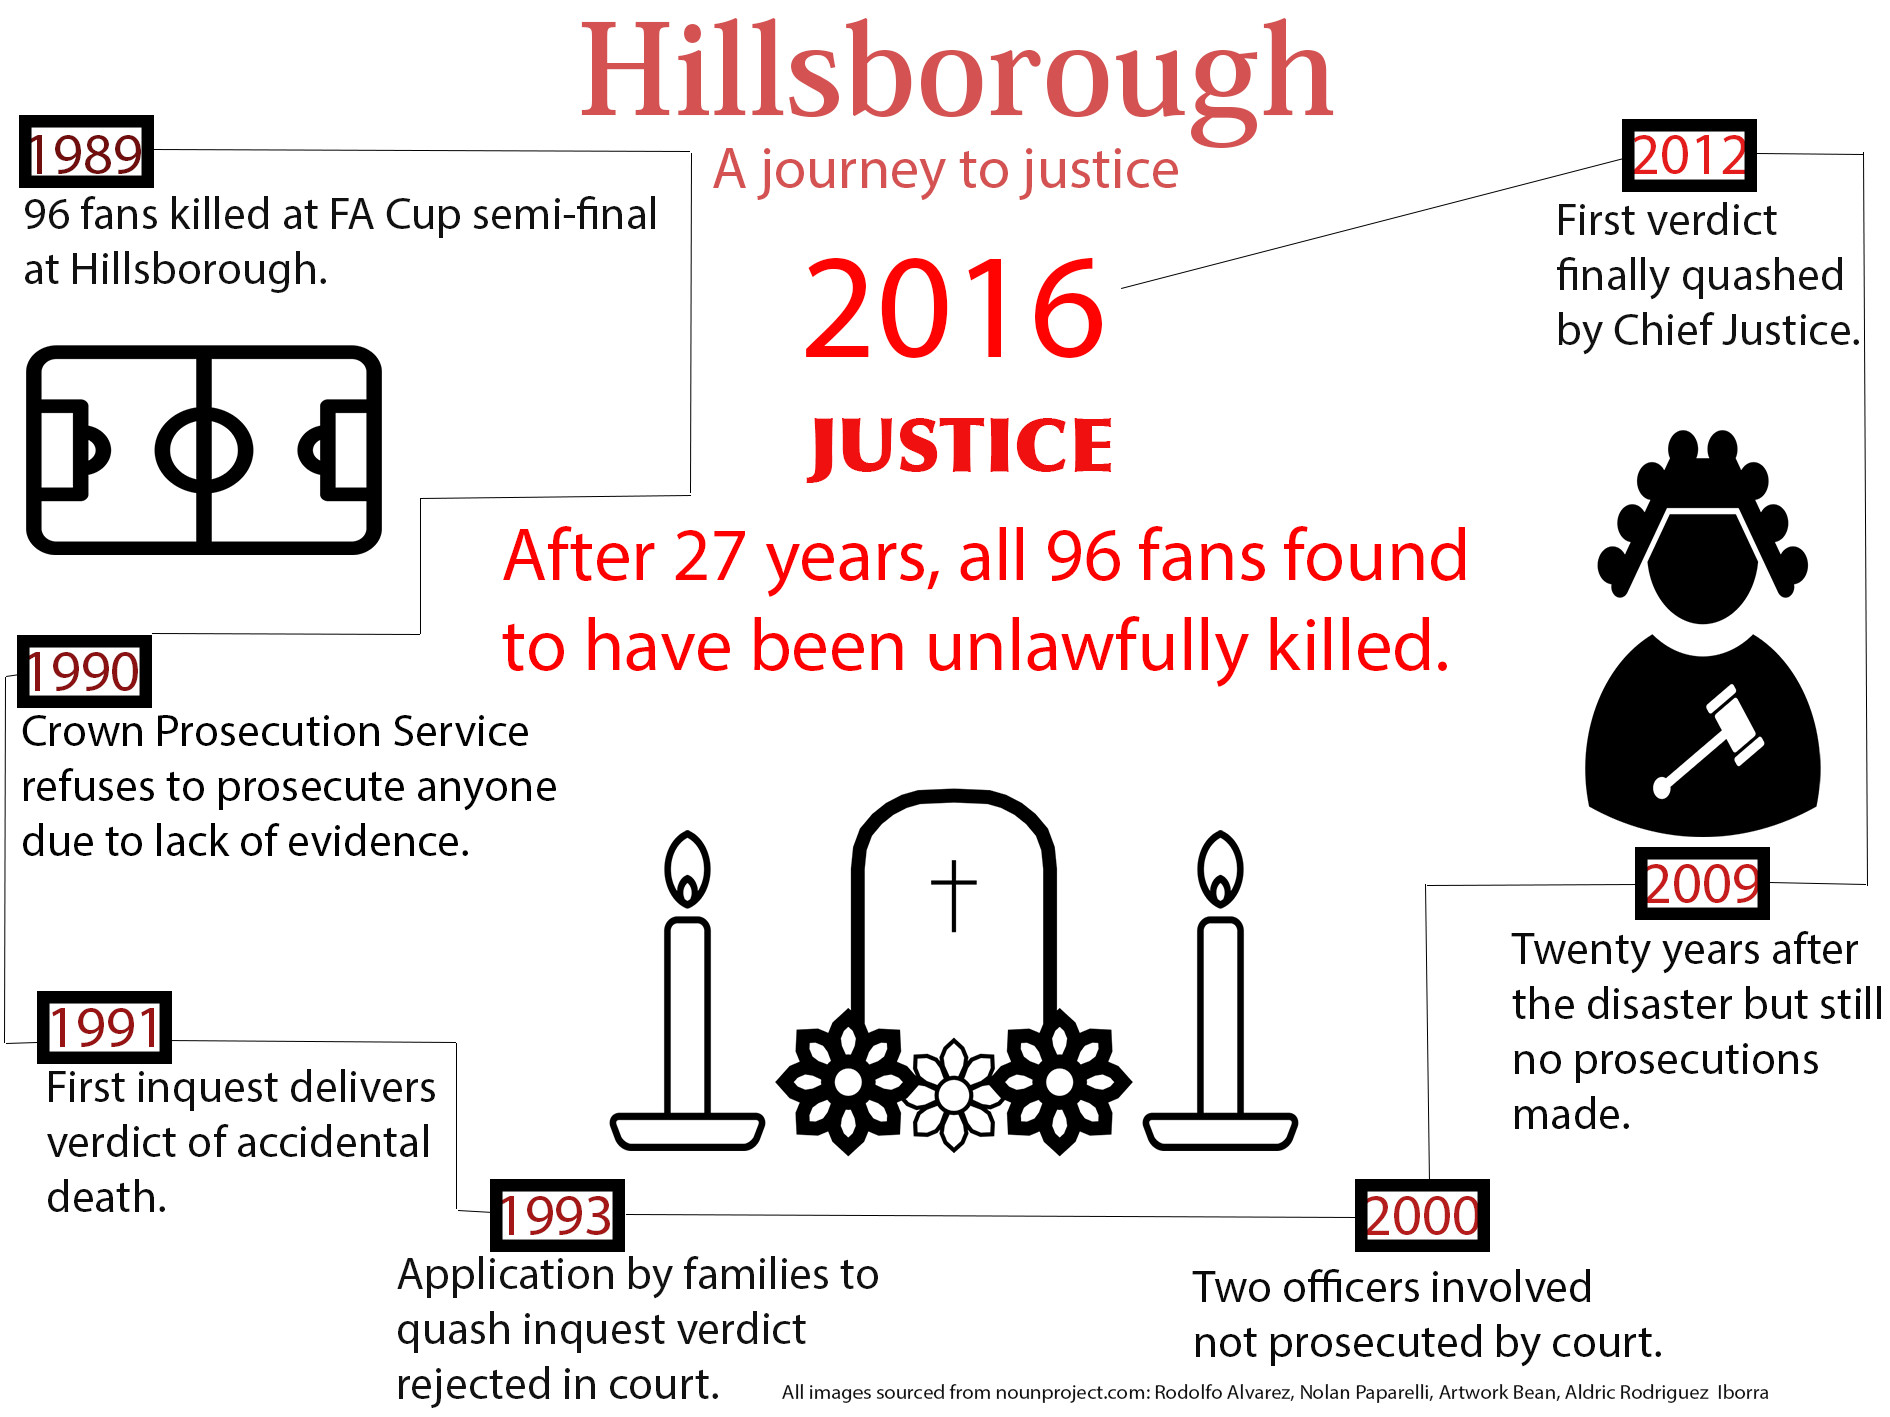 Hillsborough: A journey to justice